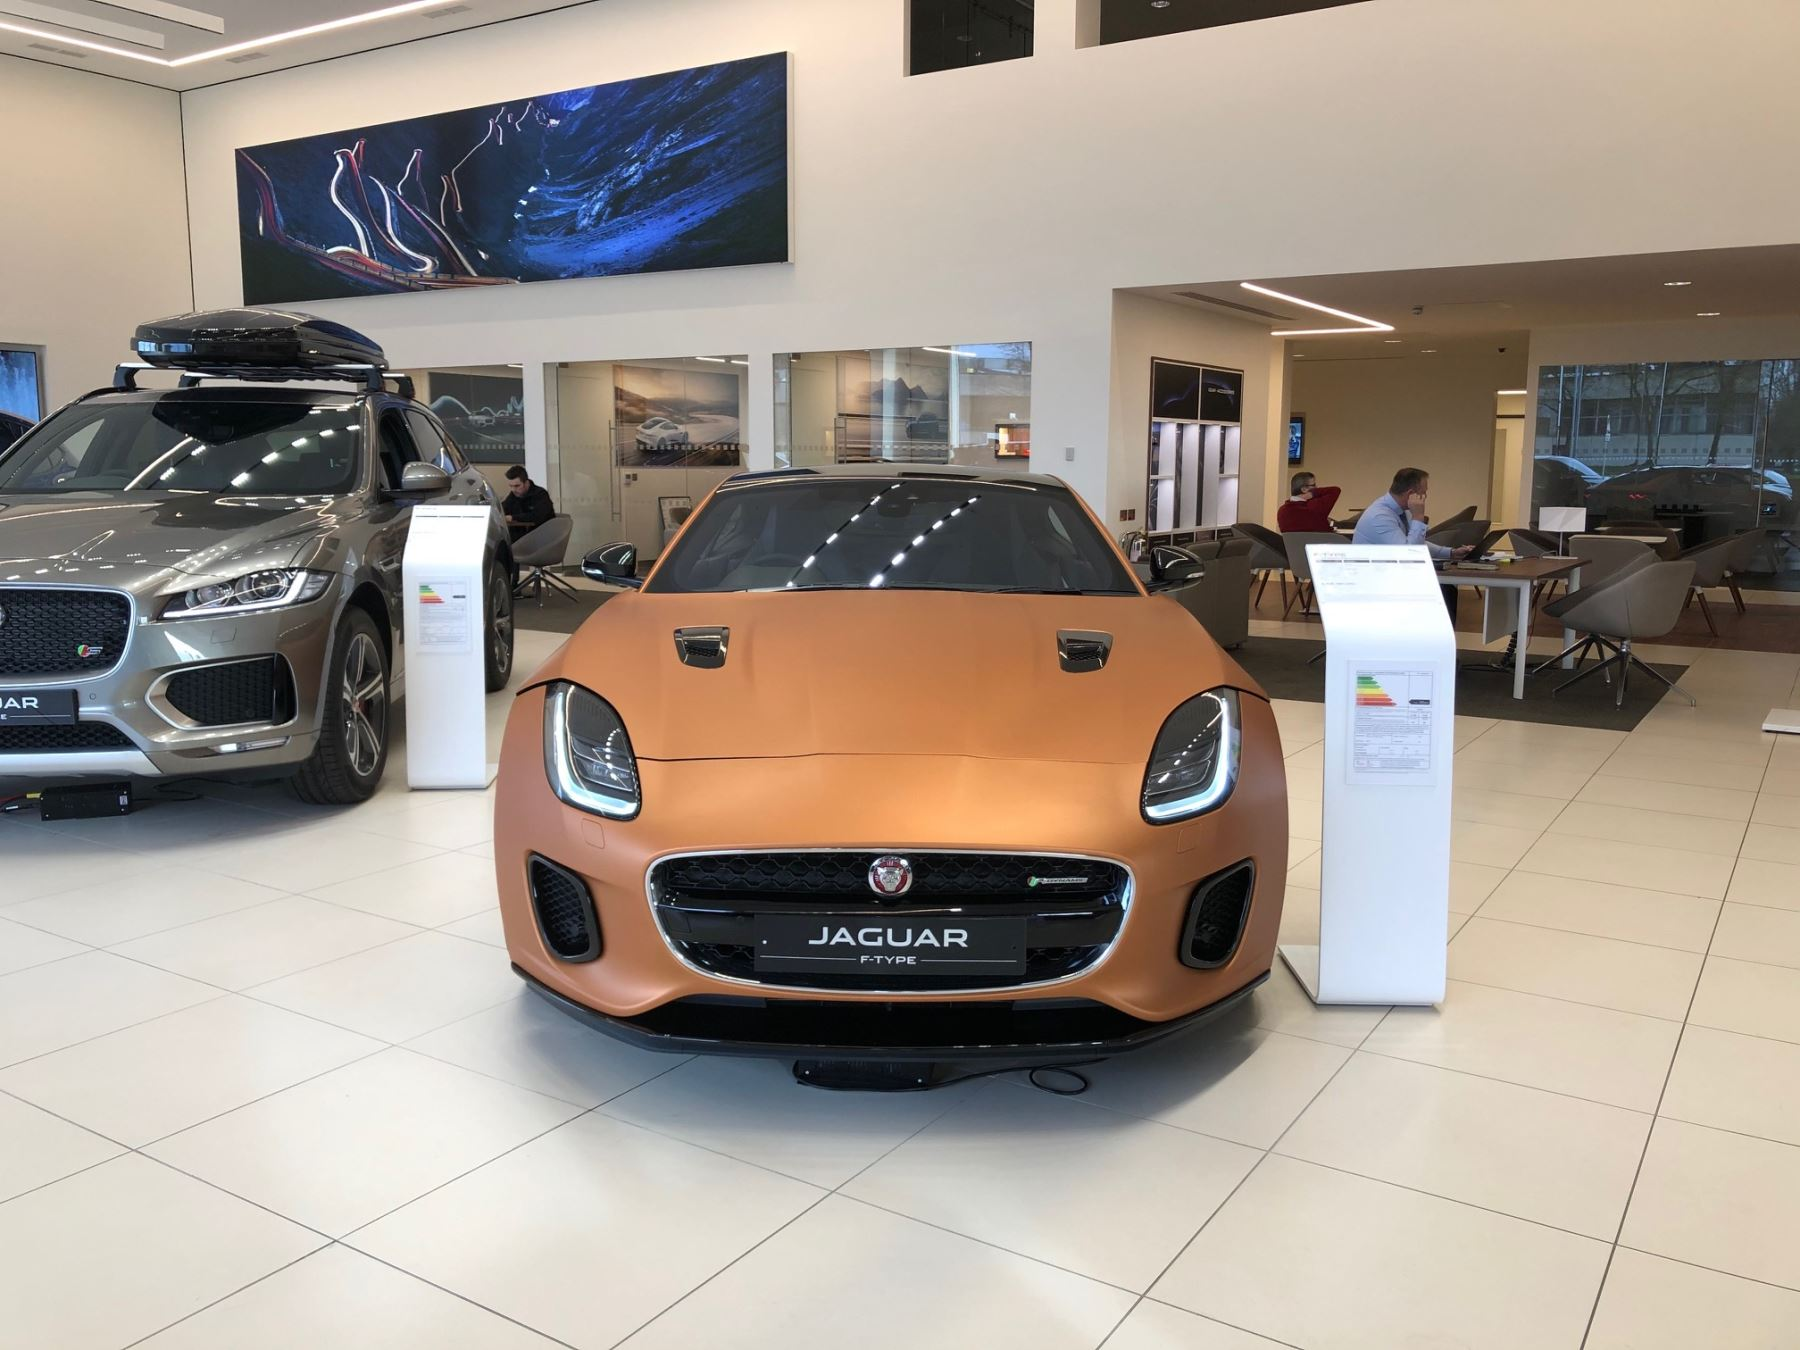 Jaguar F-TYPE 3.0 380 Supercharged V6 R-Dynamic AWD image 1